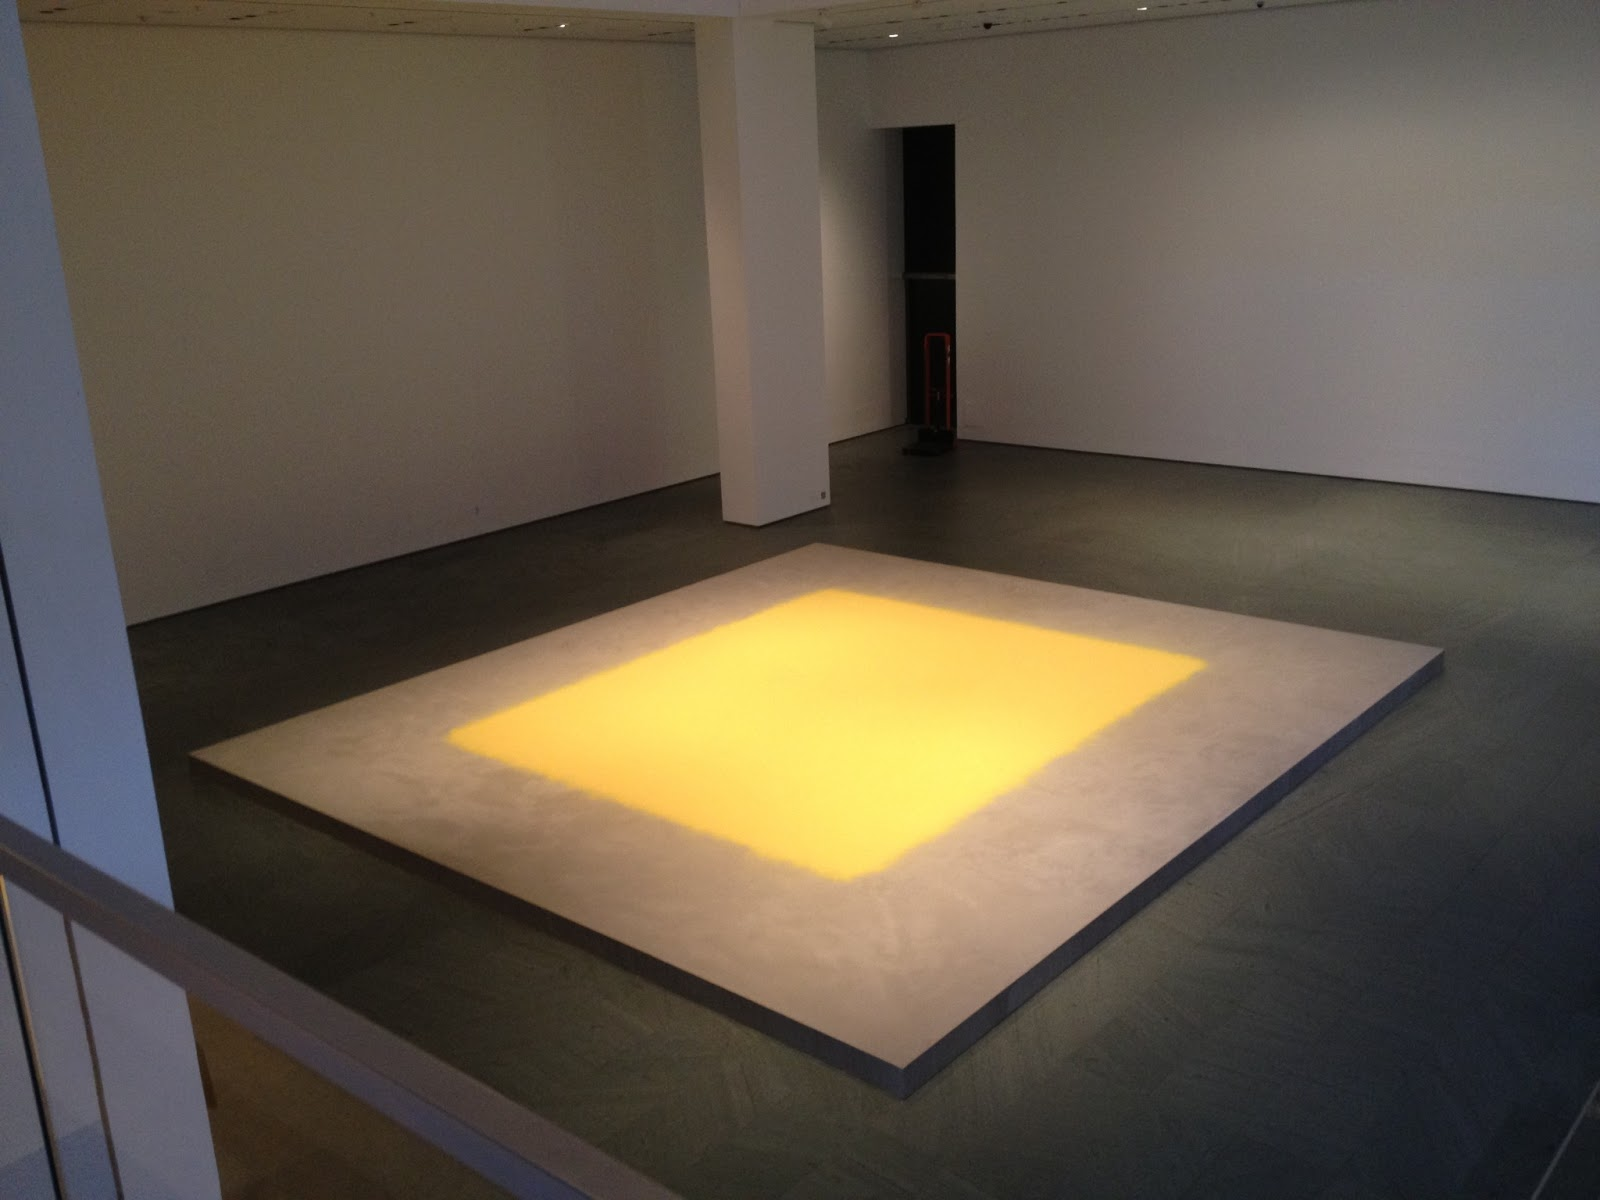 Wolfgang Laib, Pollen from Hazelnut, 2013, MoMA